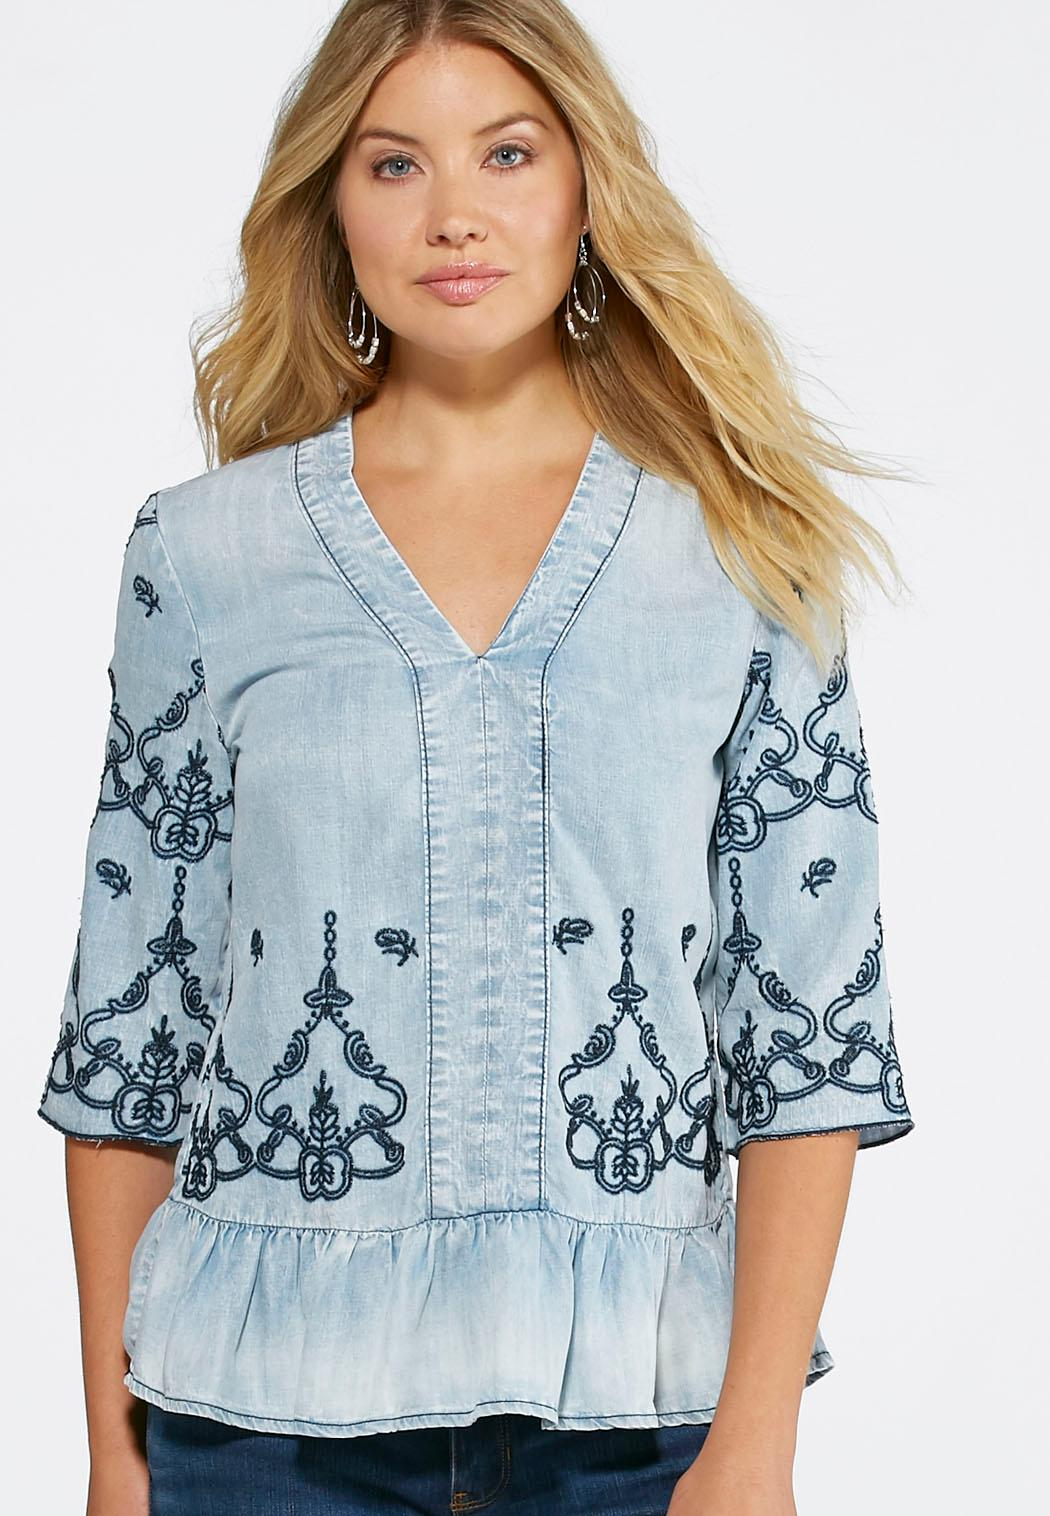 Embroidered chambray peplum top plus shirts cato fashions for Plus size chambray shirt